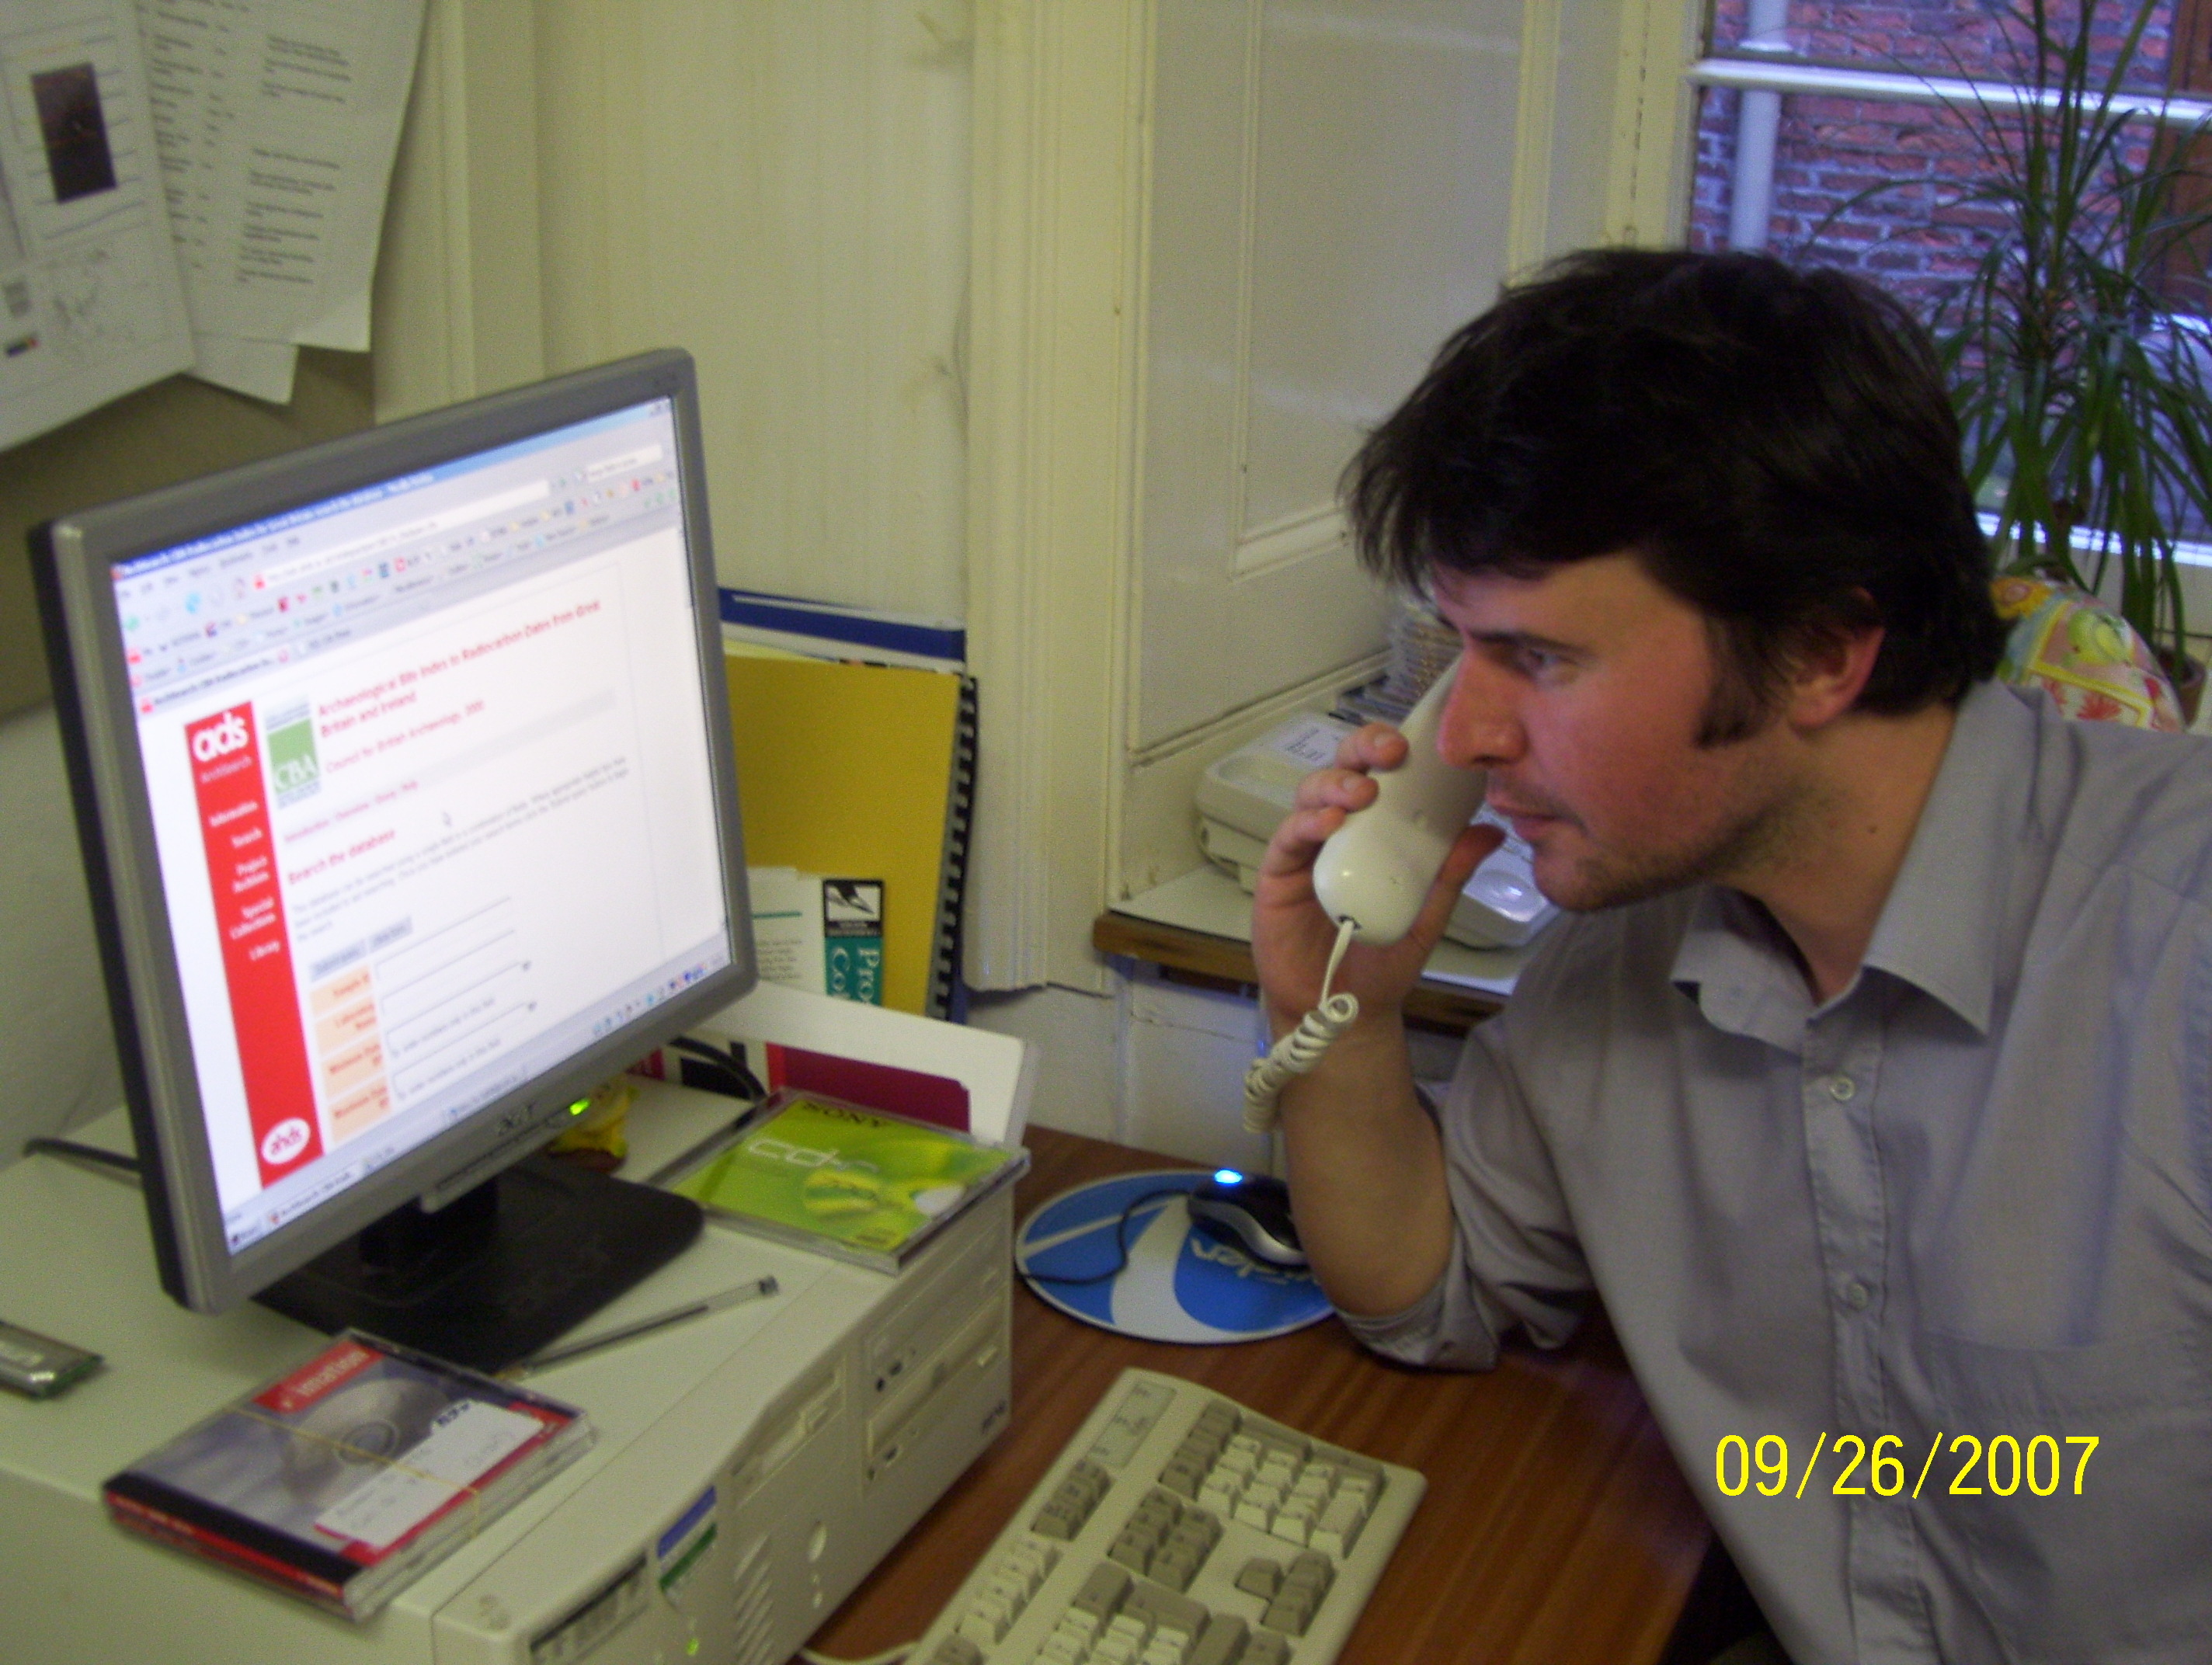 Image of Tim Evans answering the phone